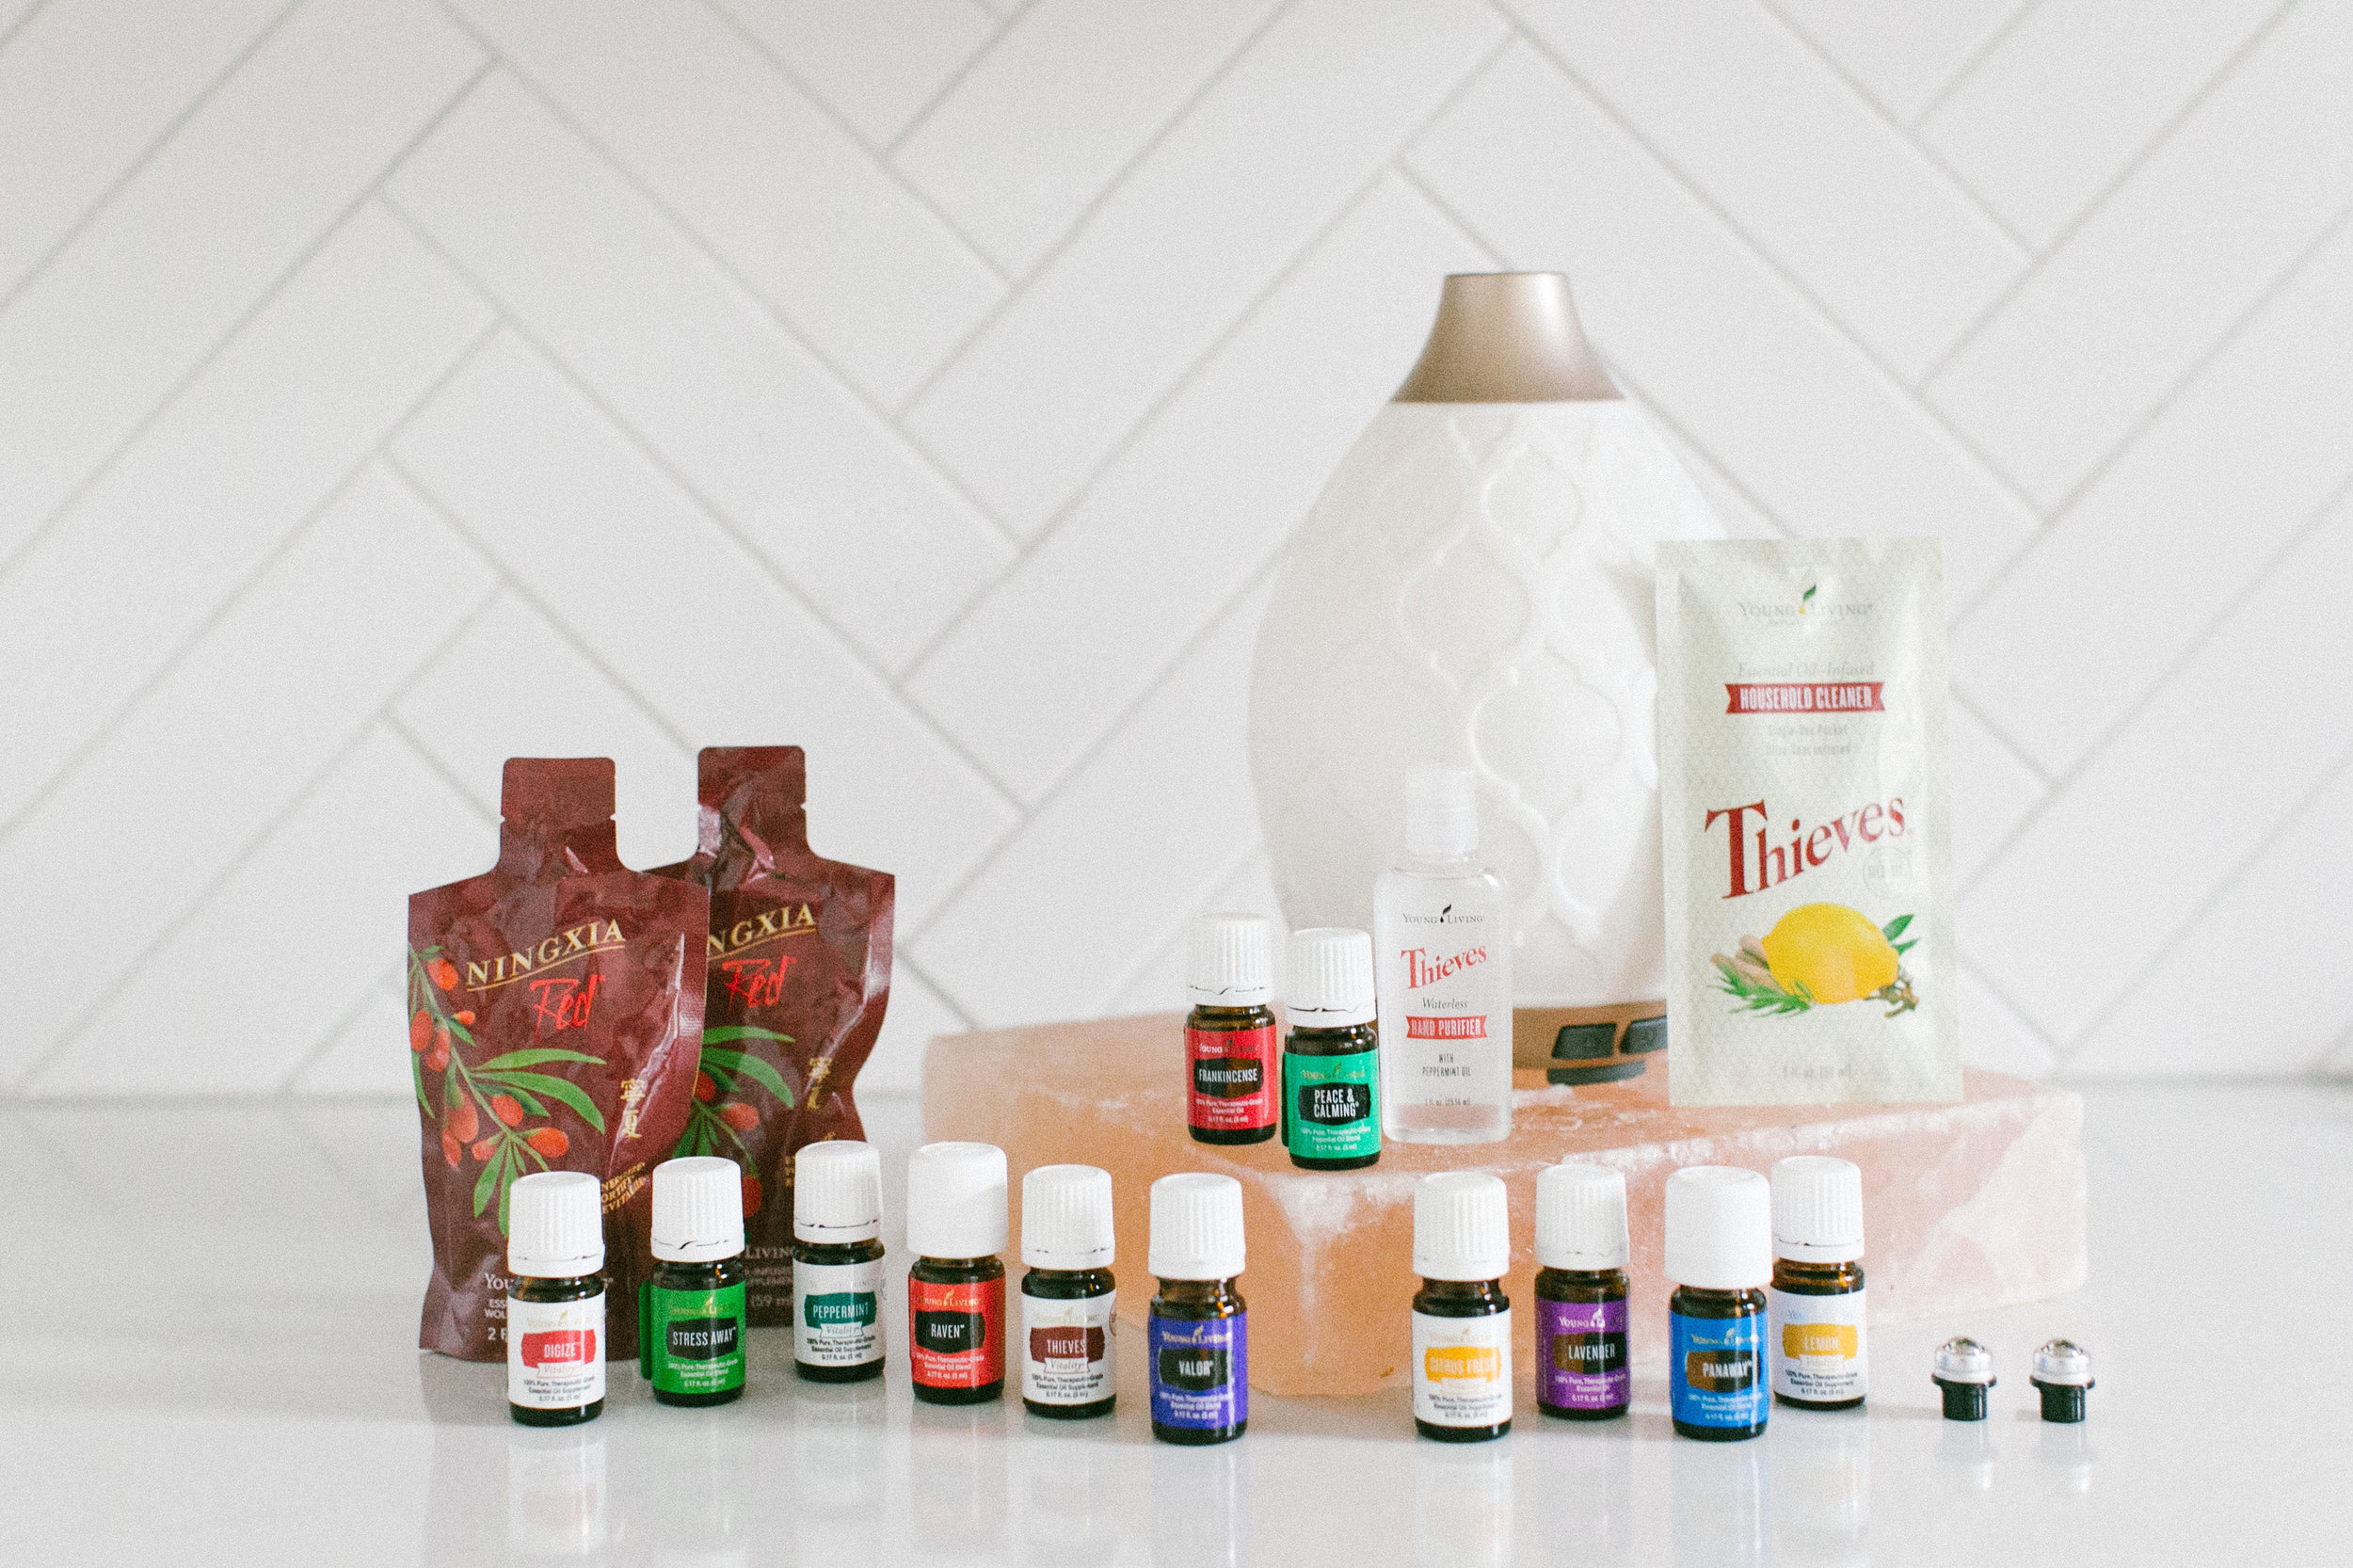 $165 - $265 depending on diffuser choice